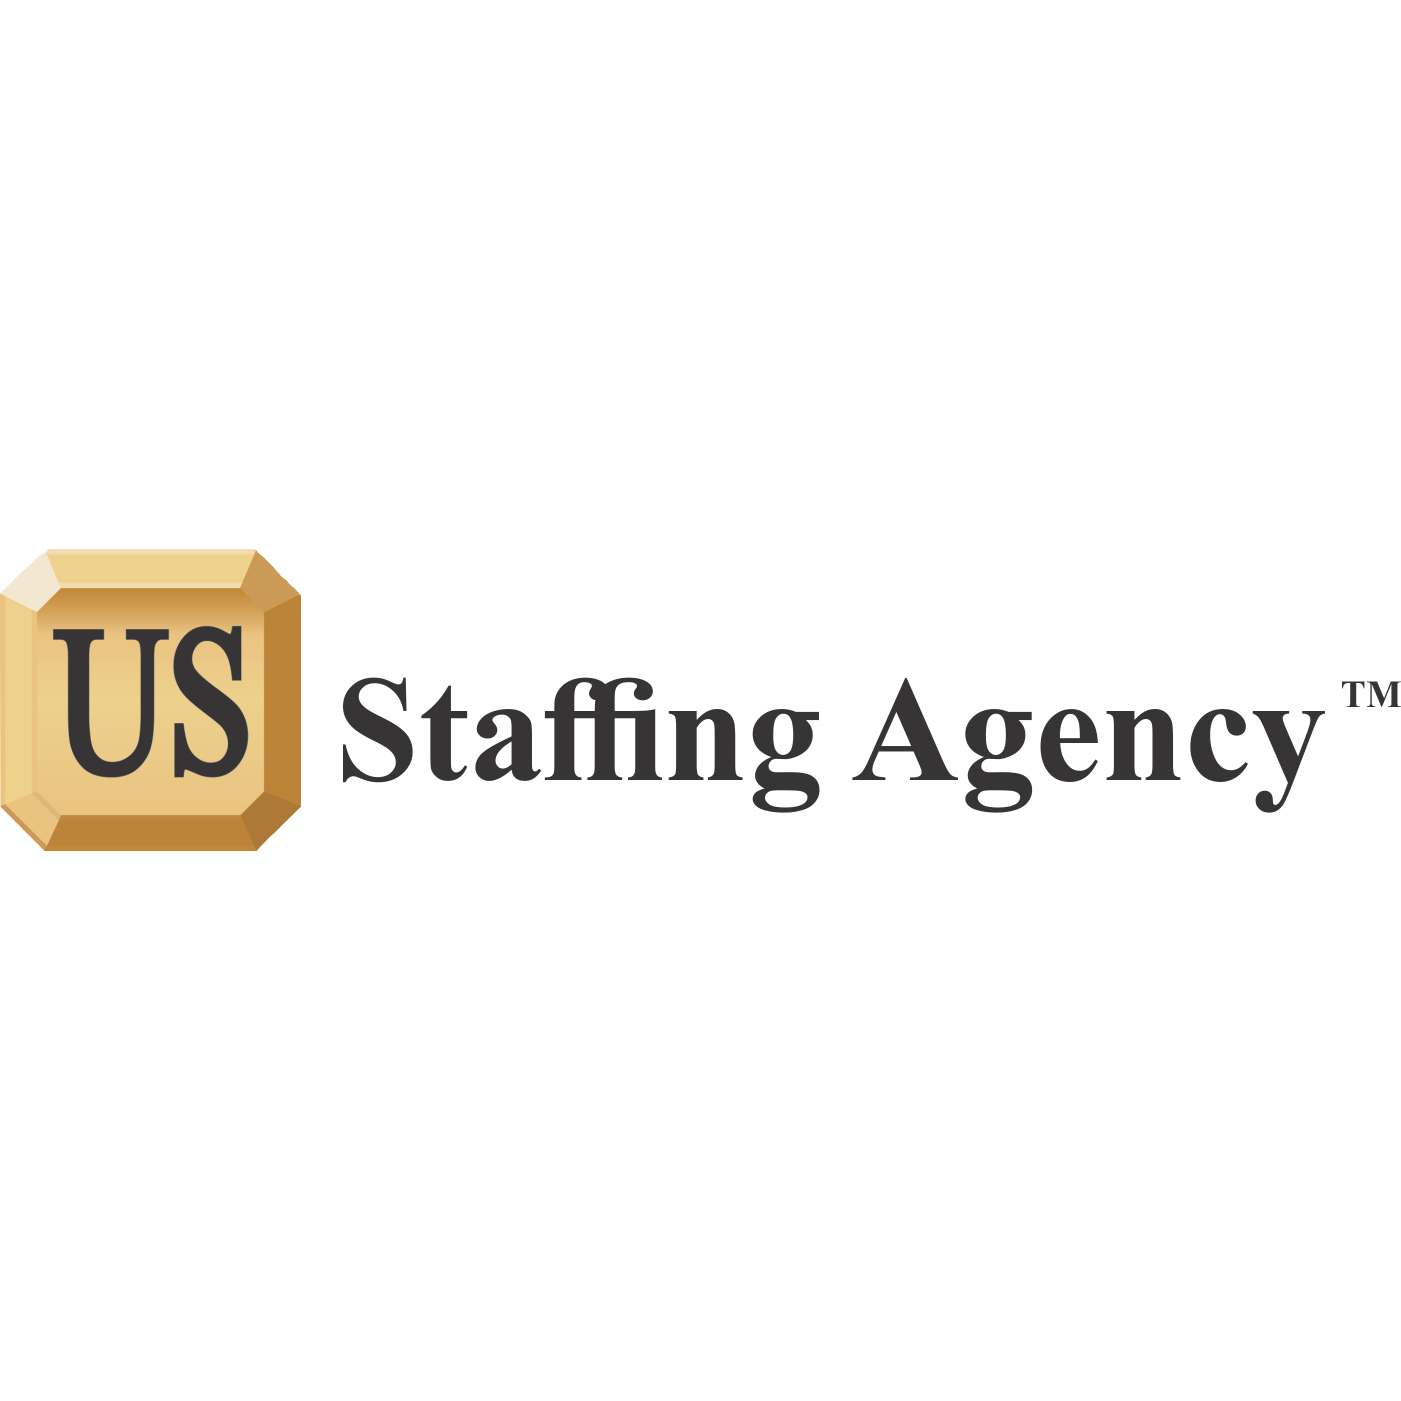 U.S. Staffing Agency image 1